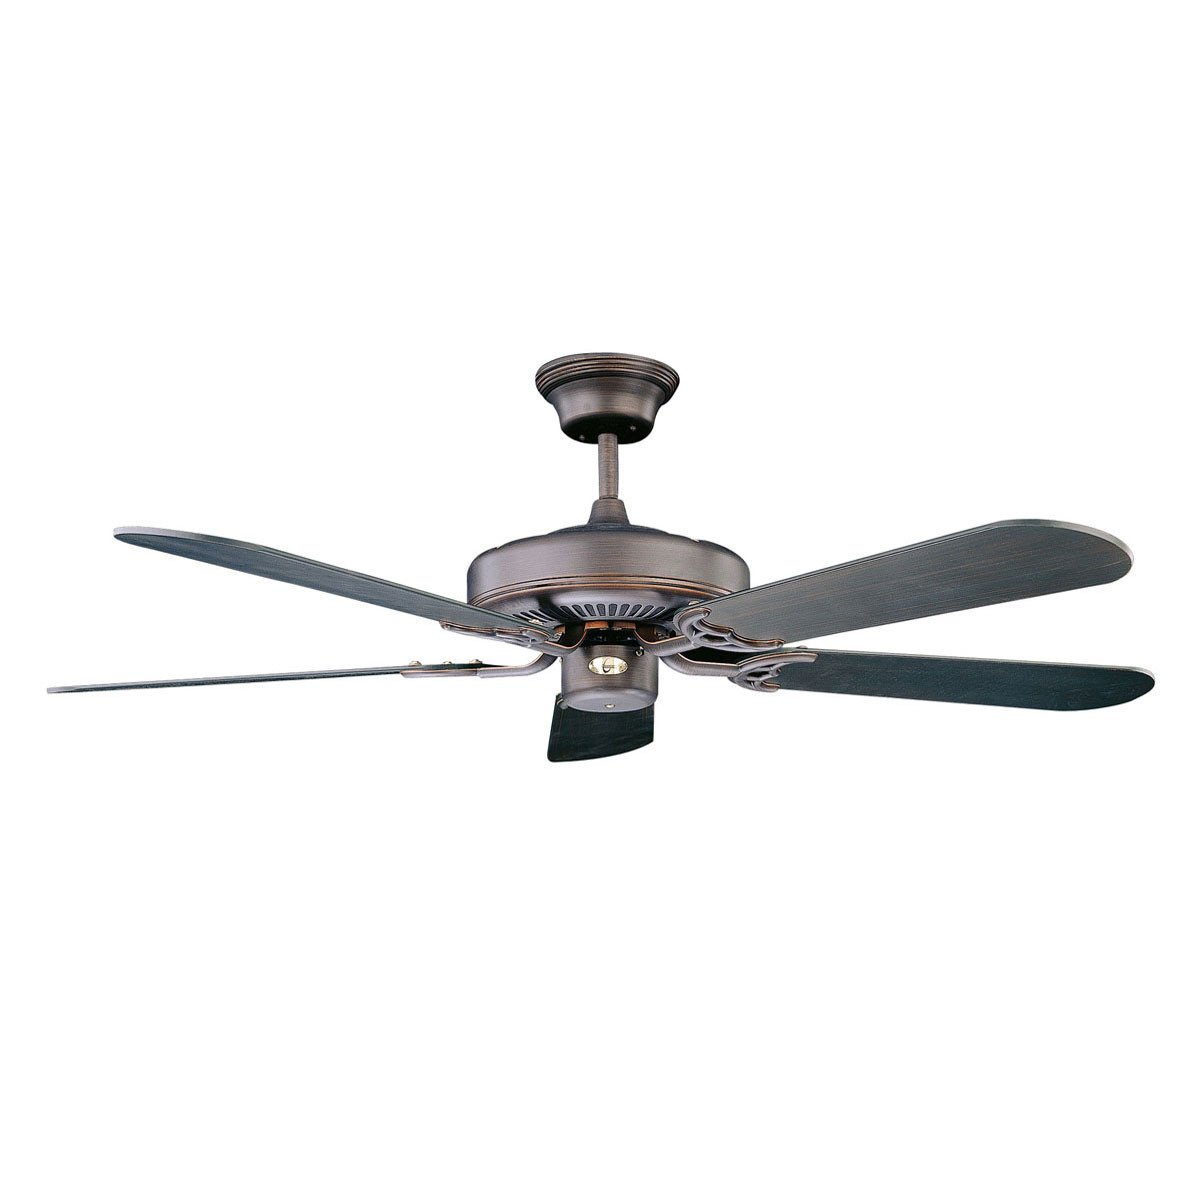 "Concord Fans Decorama Small Modern 42"" Oil Rubbed Bronze Ceiling Fan"